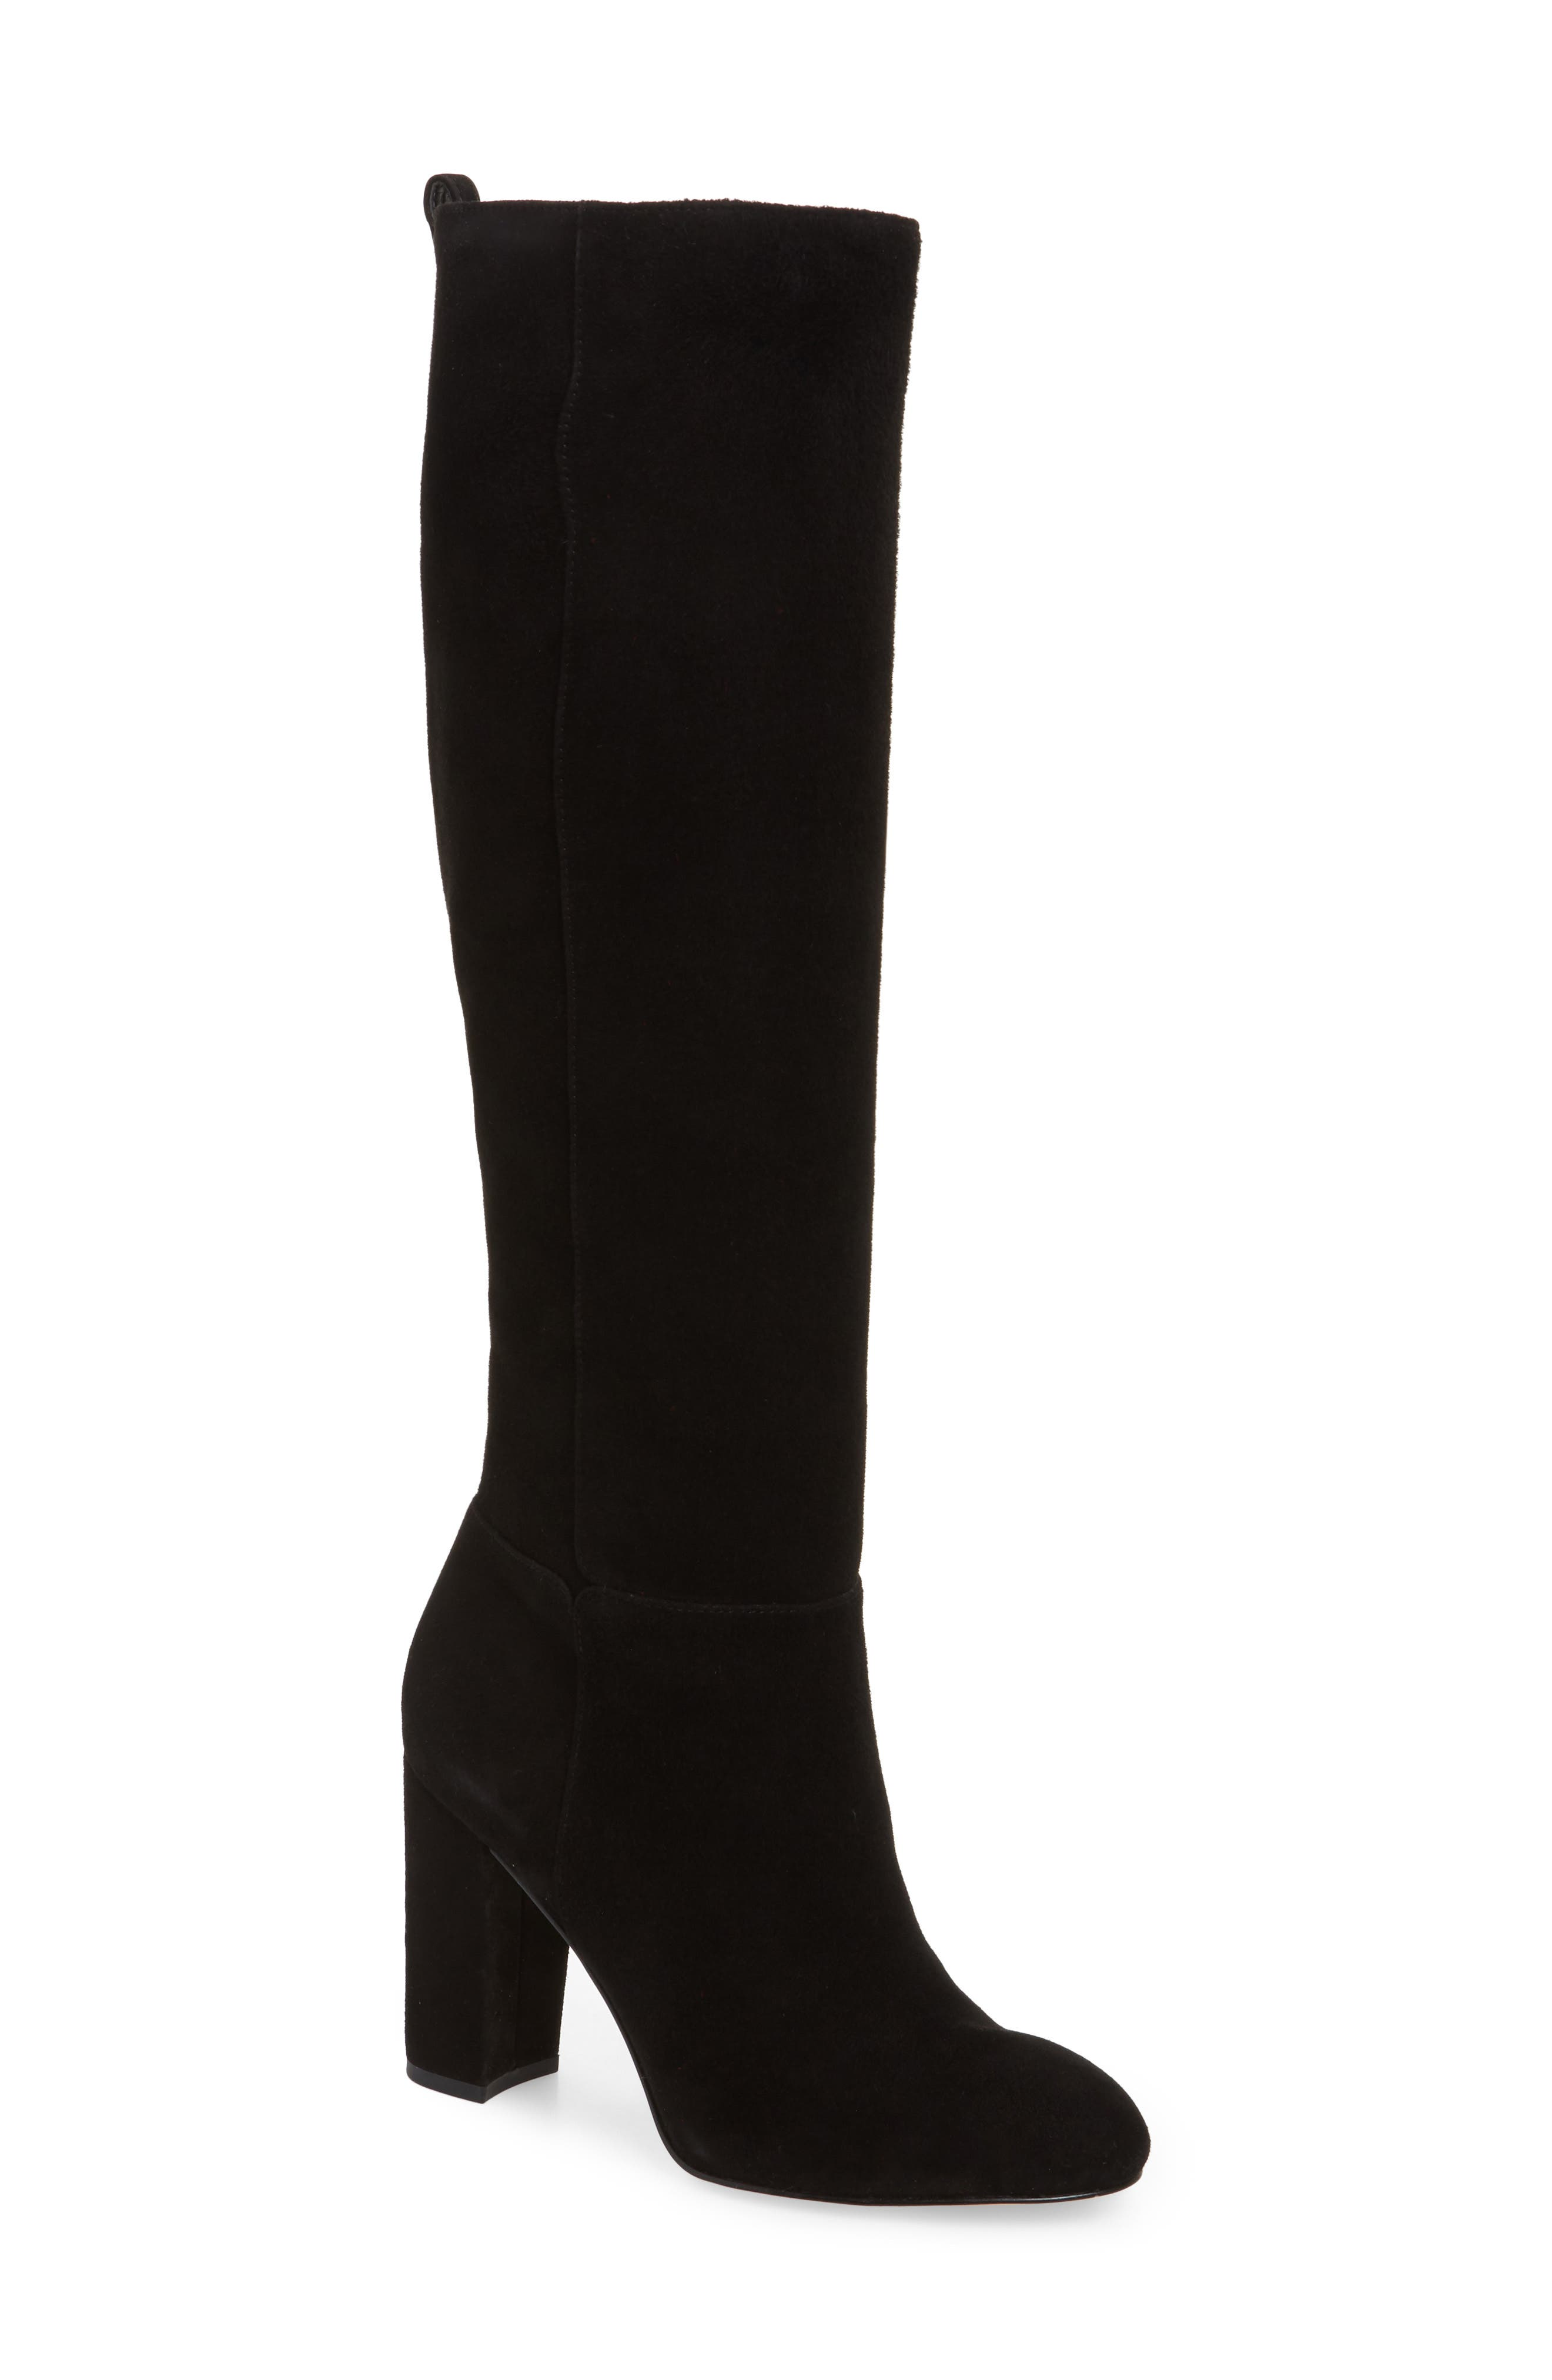 Sam Edelman Caprice Knee-High Boot, Black